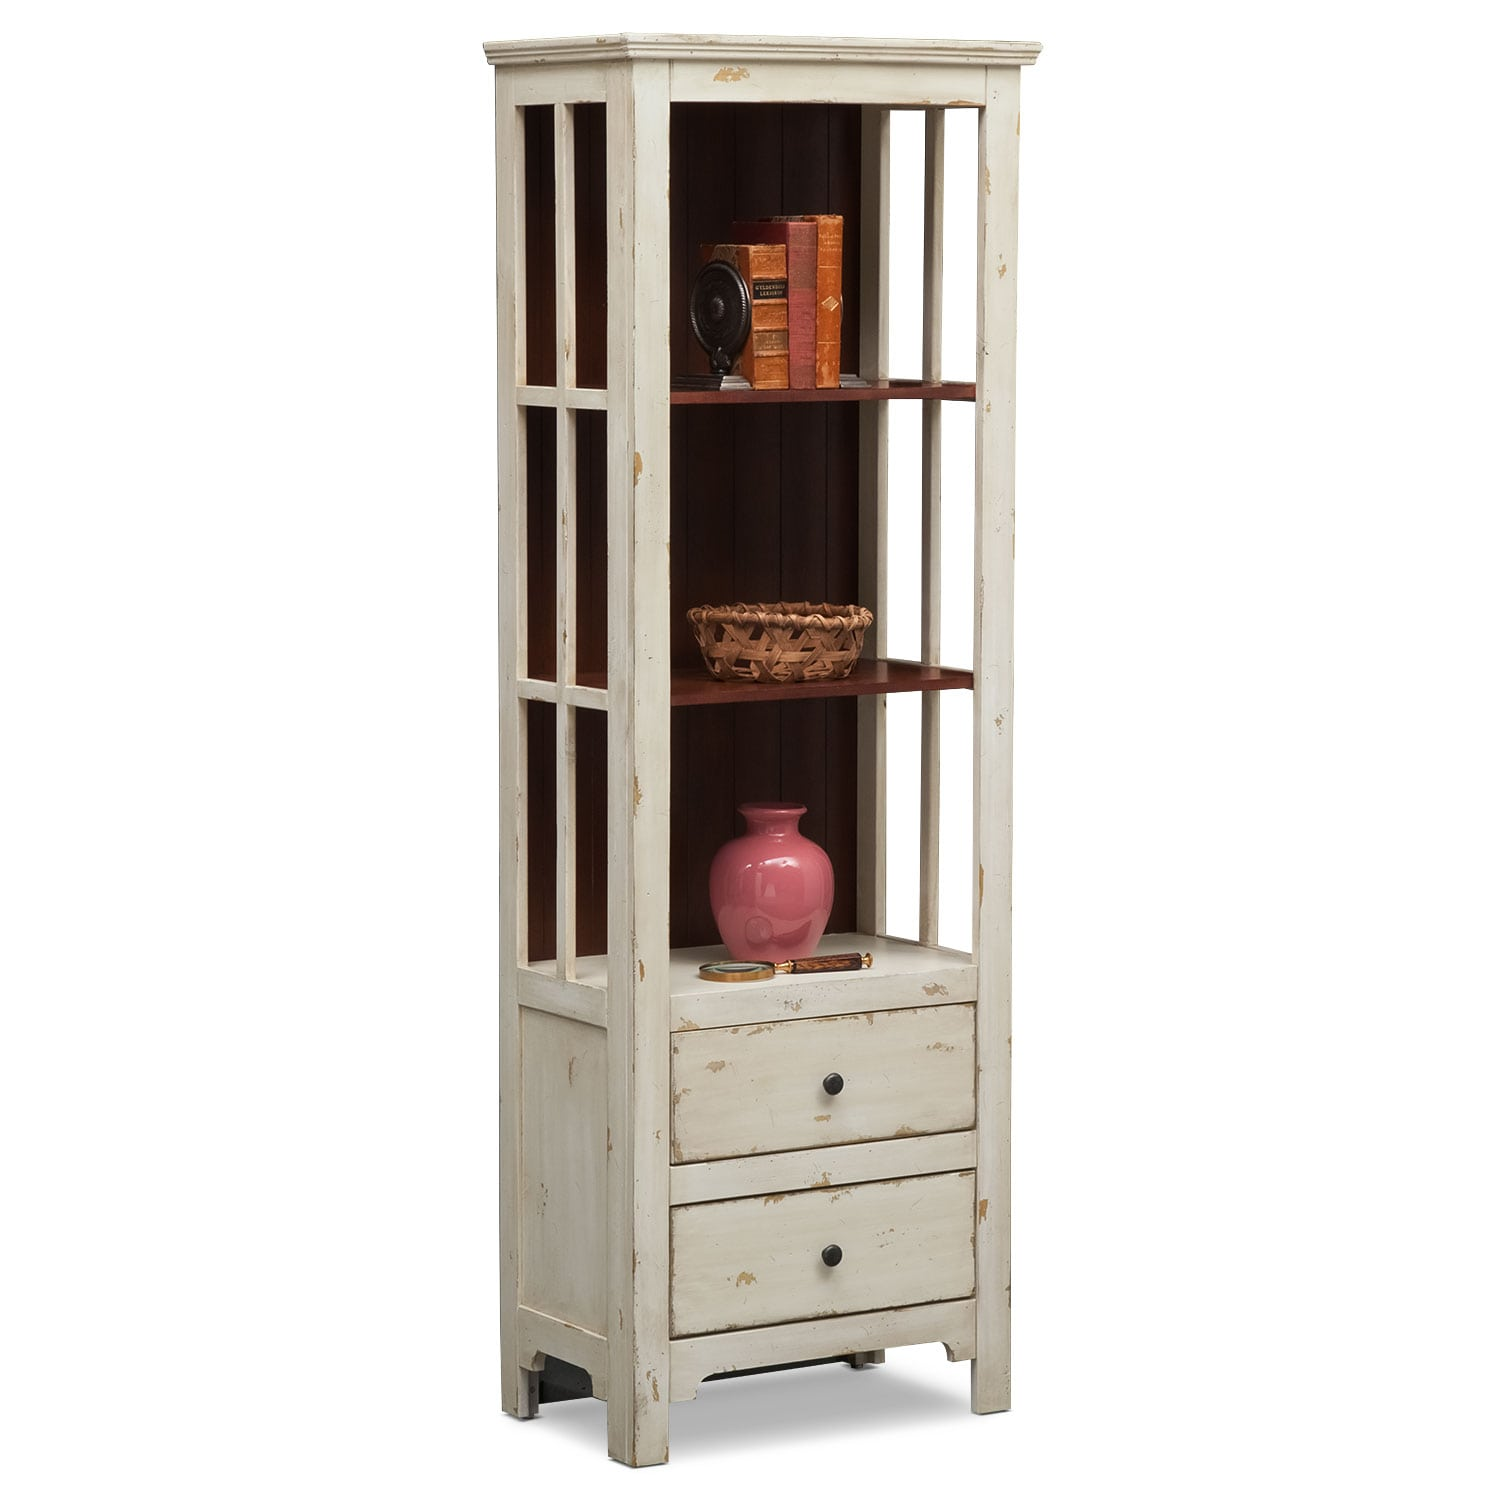 Keefe Bookcase - White